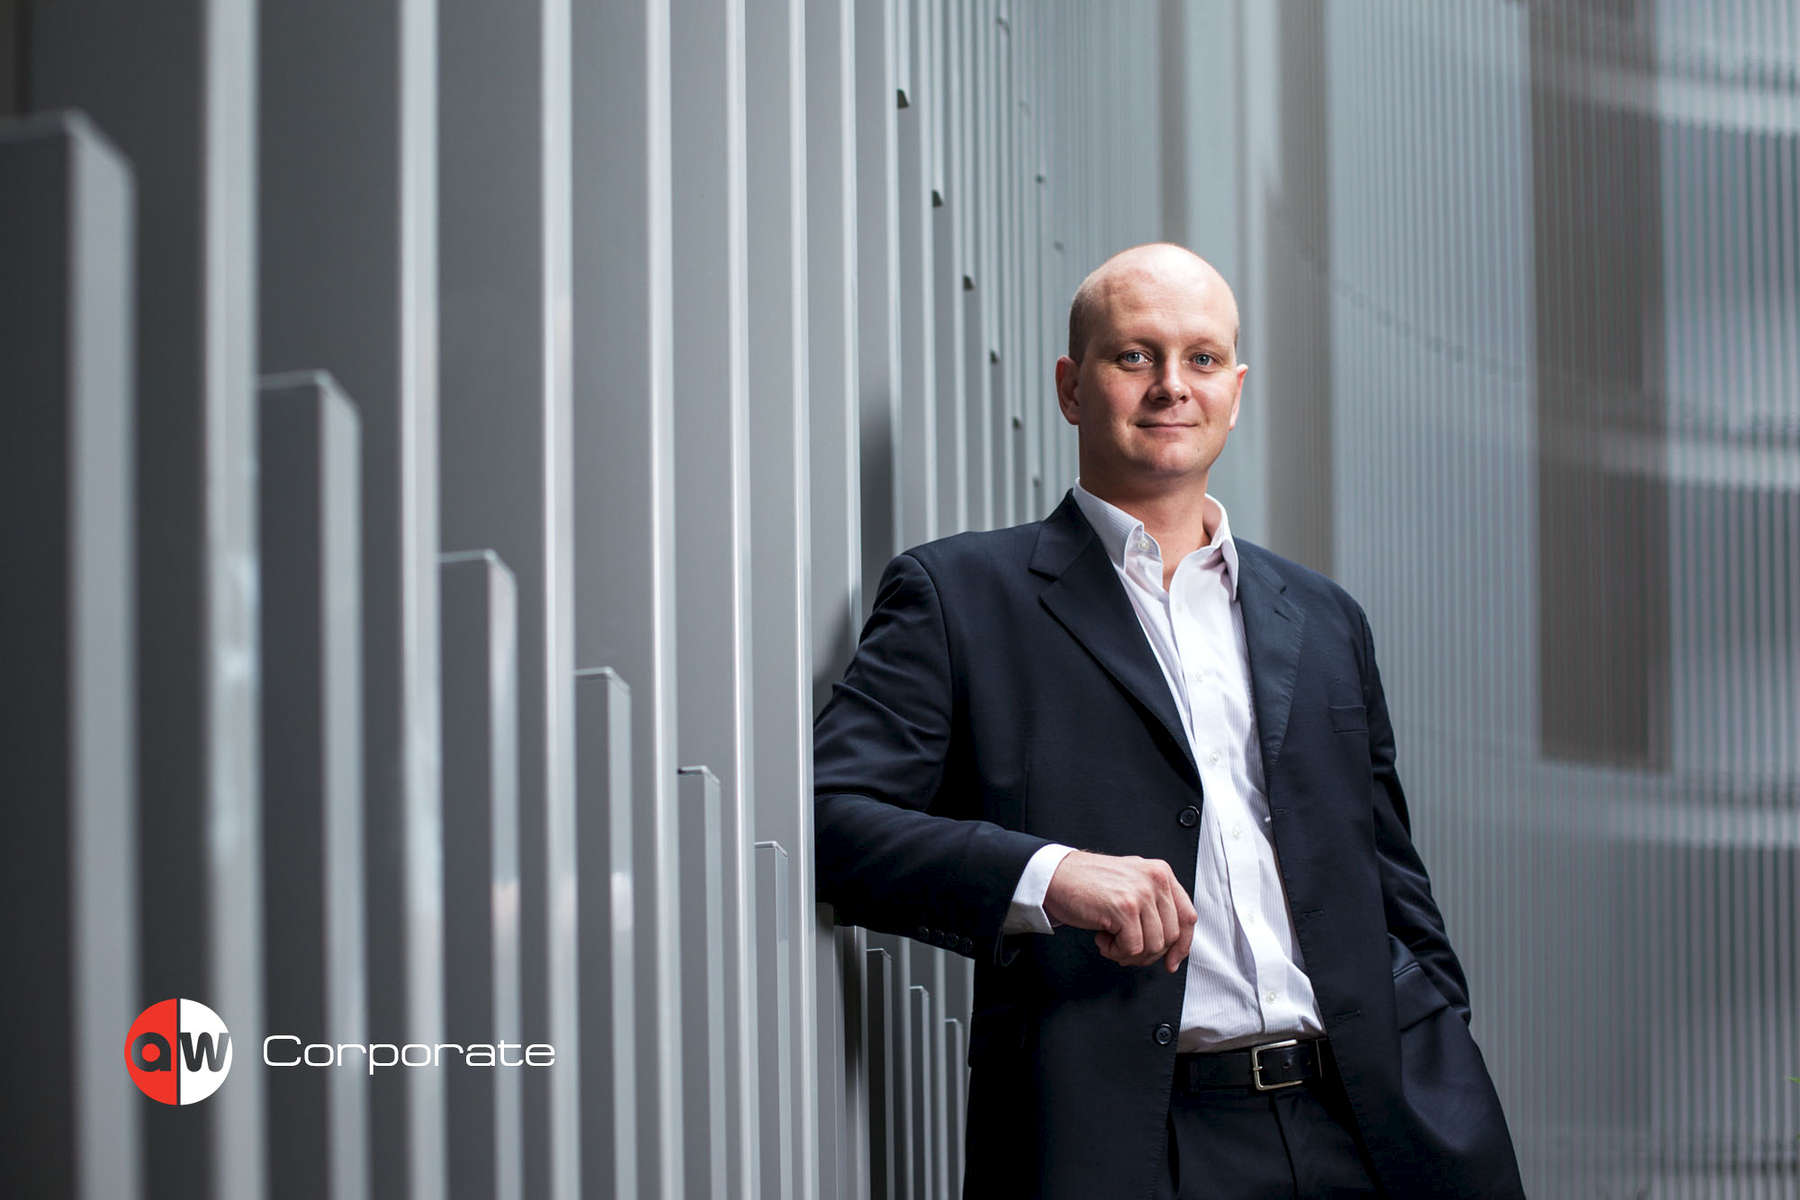 Portrait of Mark Turnbull, businessman, with industrial background by Cairns photographer